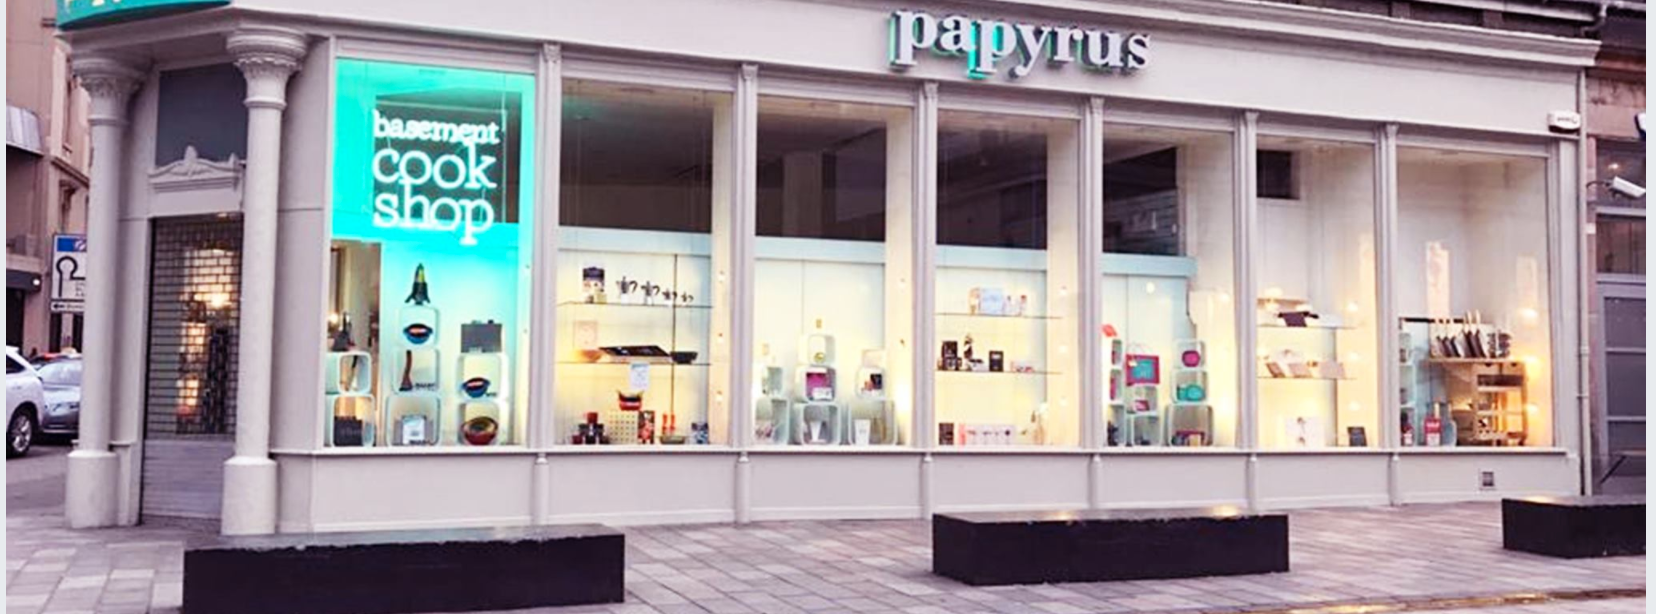 Above: Glasgow-based Papyrus is one of the many great card retailers that will have their Christmas takings curbed by the lockdown being imposed in Scotland.